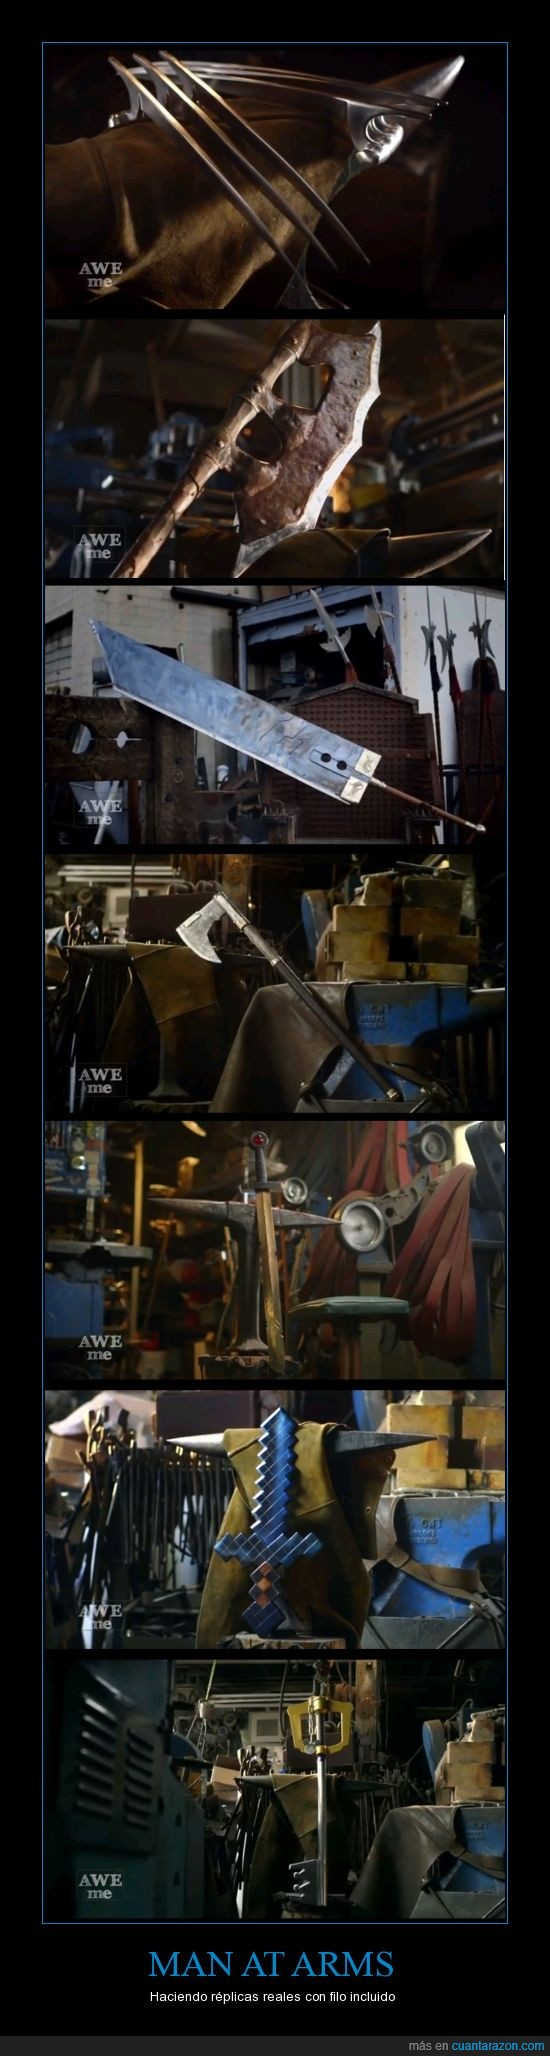 Adventure Time - Finn's swords,aptas,FF VII - Buster Sword,Gimli's Bearded Axe - Lord of the Rings,Kingdom Hearts - Sora's Keyblade,Man at arms,Minecraft Sword,niños,No,para,Skyrim - Orcish Battleaxe,Tony Swatton,Wolverine blade